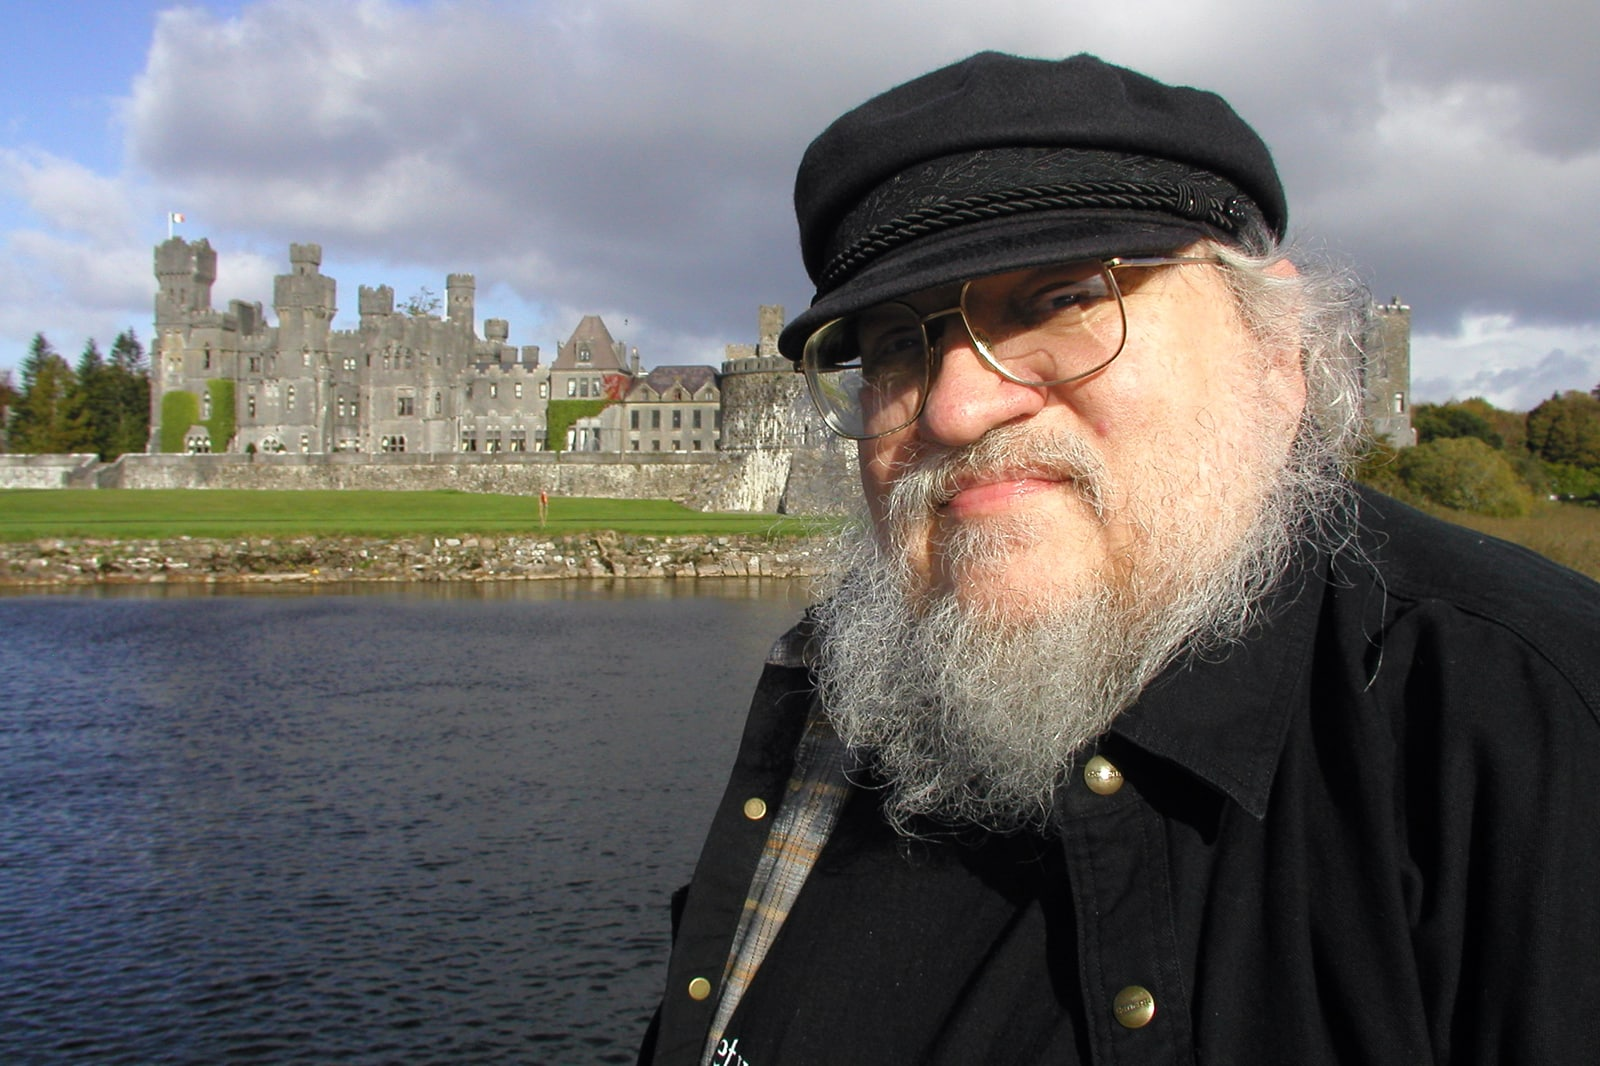 George RR Martin on The Winds of Winter Writing Progress